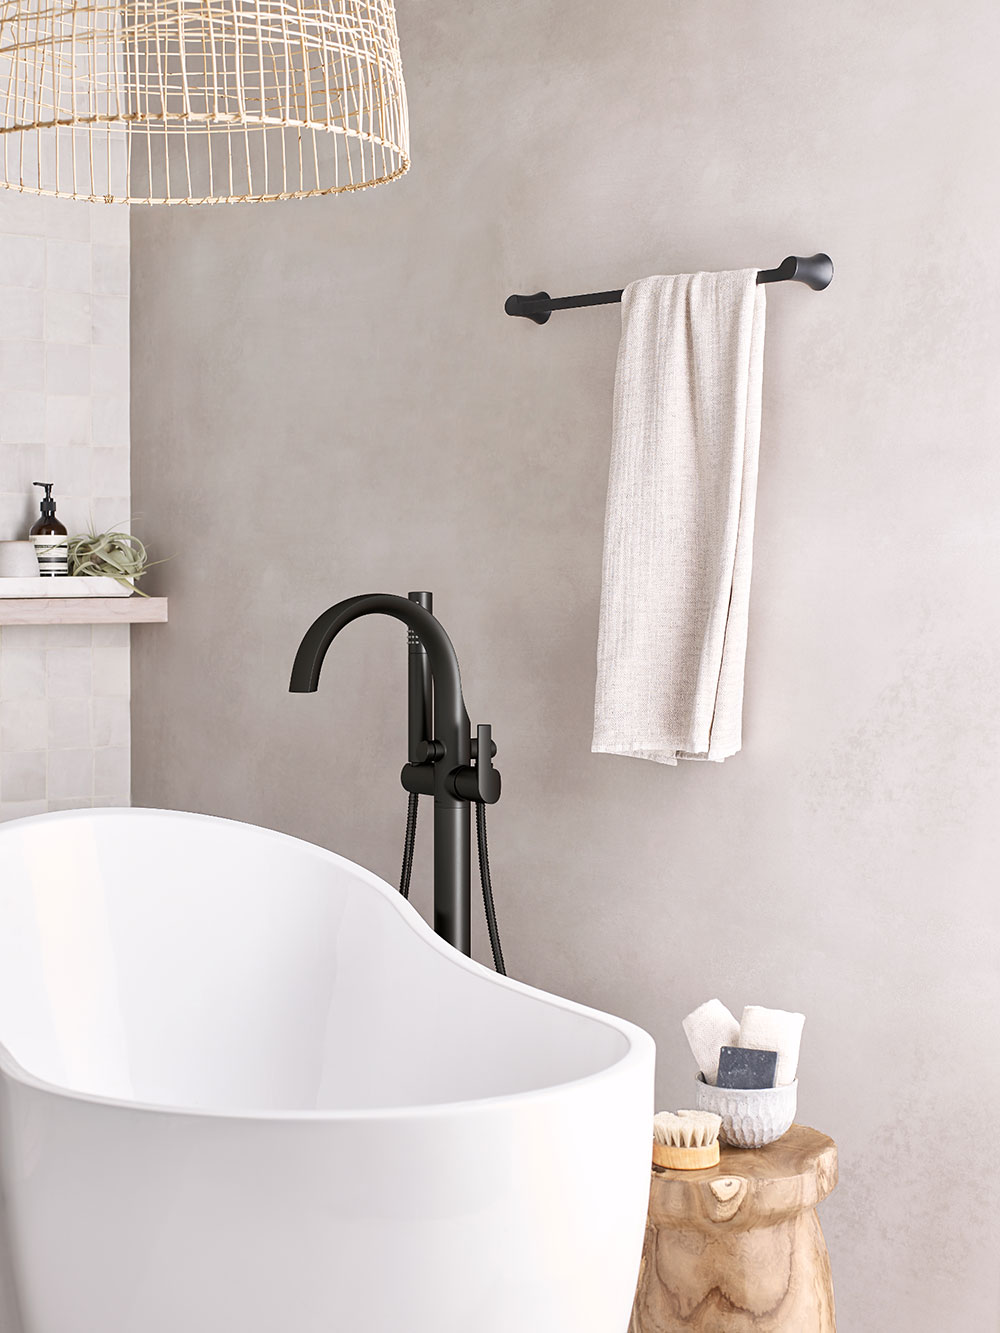 Park Supply Company Kitchen And Bathroom Experts